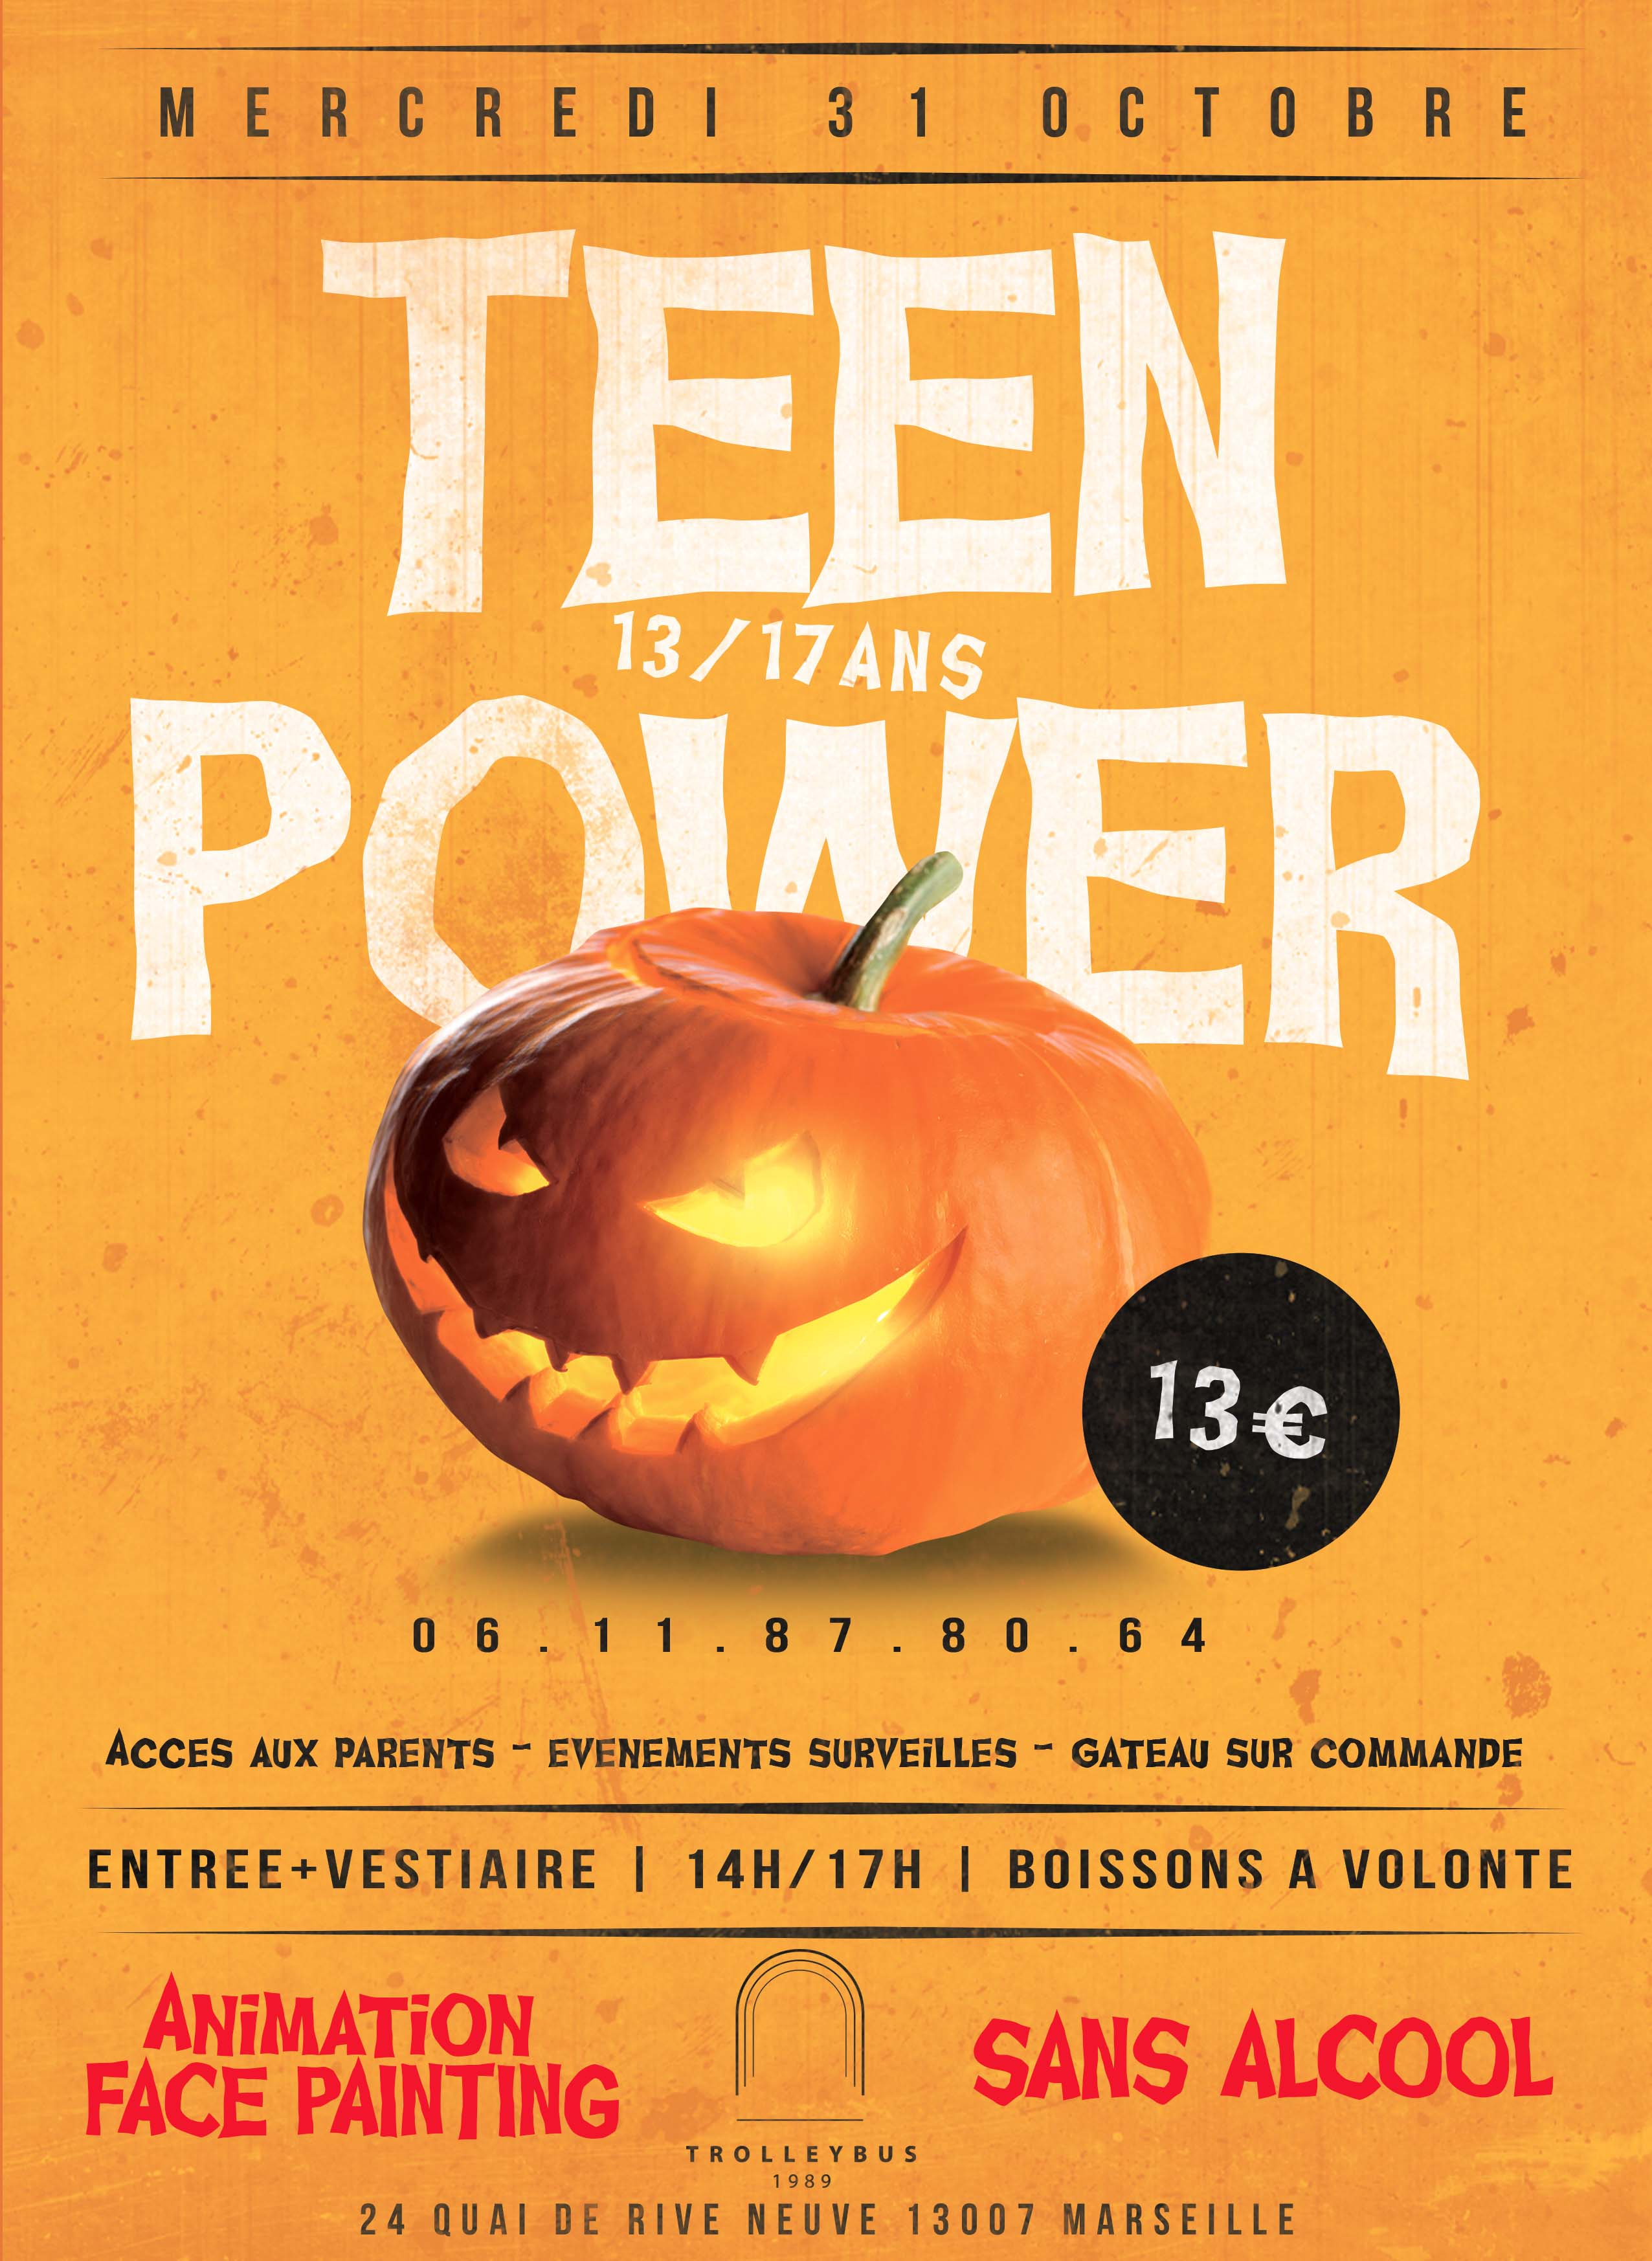 TEENPOWERV3 MERCREDI 31 OCTOBRE : TROLLEY KIDS // TEEN POWER 14h/17h